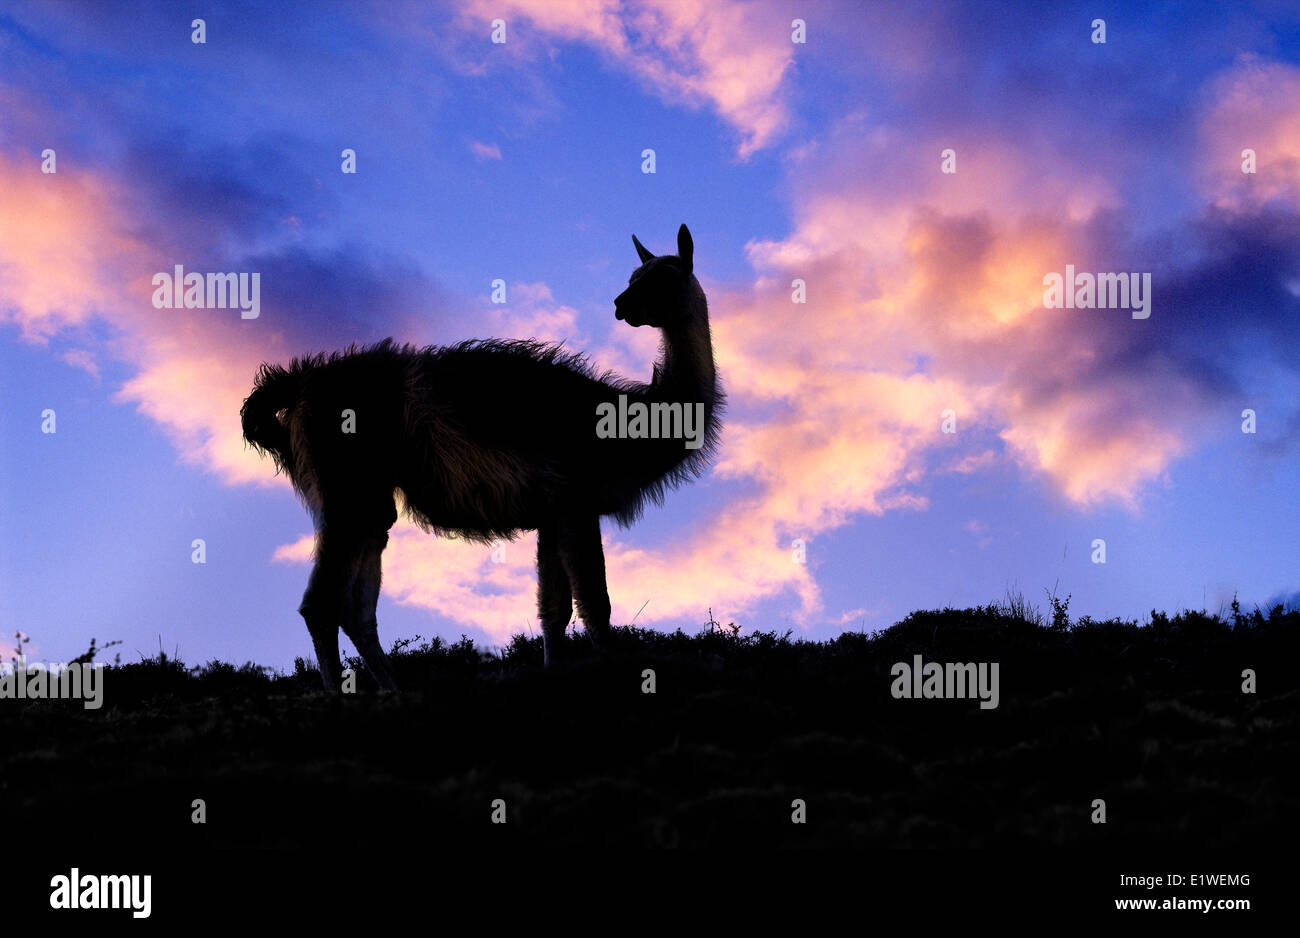 Adult guanaco (Lama guanicoe), Torres Del Paine National Park, Patagonia, southern Chile, South America - Stock Image